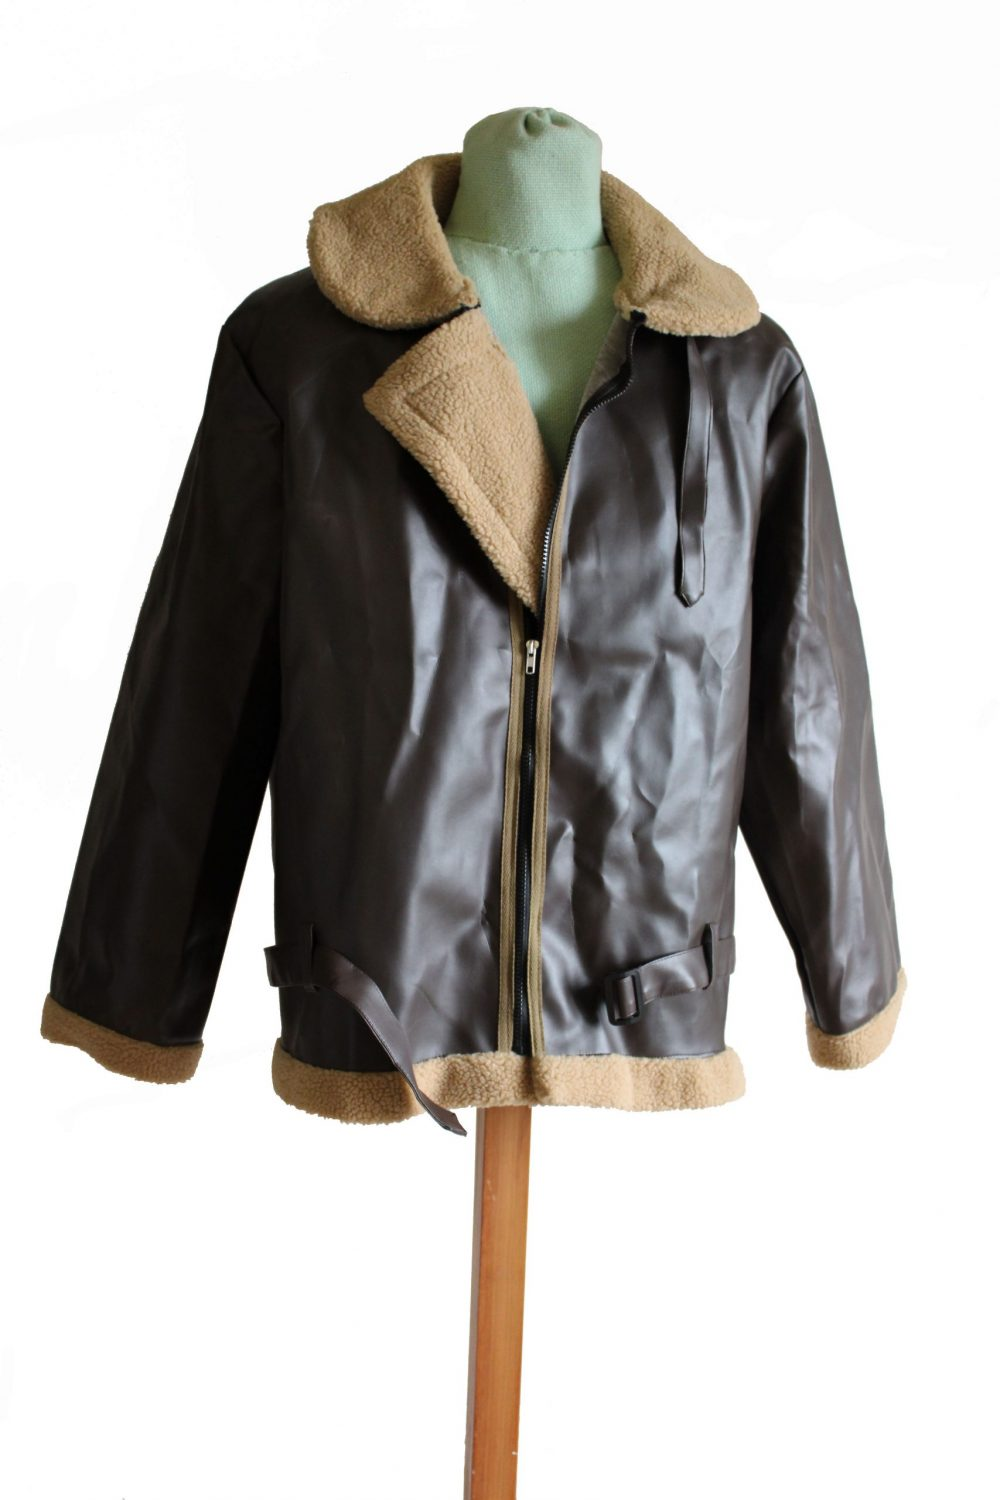 Brown leather aviator jacket with light brown sheepskin cuffs and collar